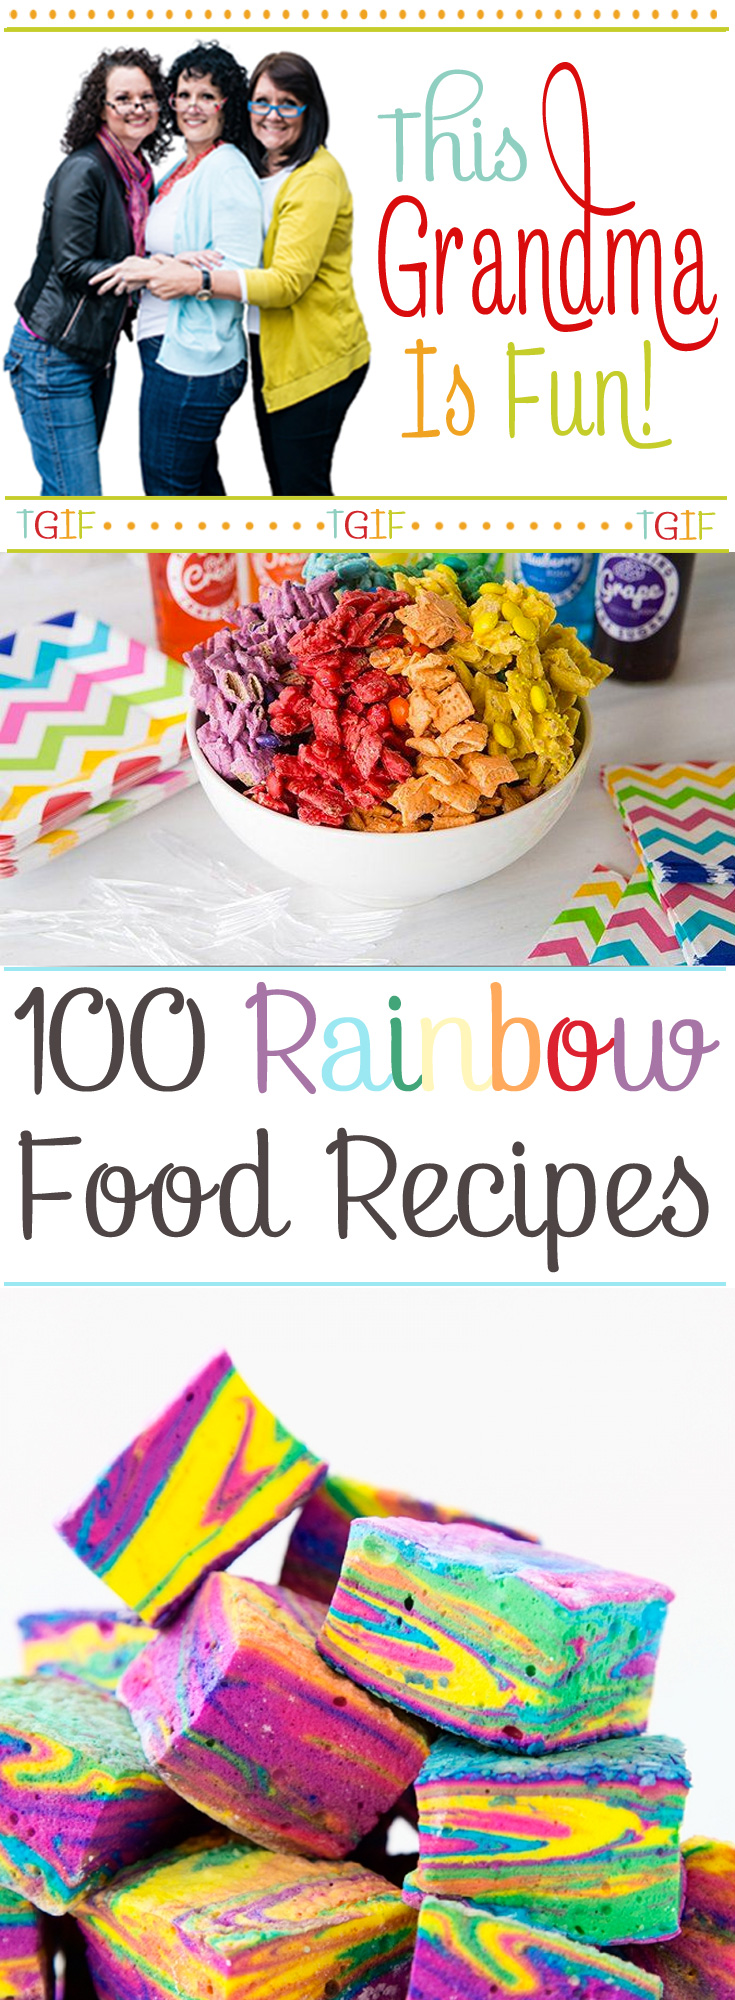 We have gathered 100 hundred delightful rainbow snacks, treats, and desserts you can make for your grandchildren. They are perfect for birthday parties celebrations and, of course, St. Patrick's day. St. Patrick's day just around the corner. Sneaky leprechauns will be busy avoiding the many traps set for them so they can make it to the pot of gold at the end of the rainbow!